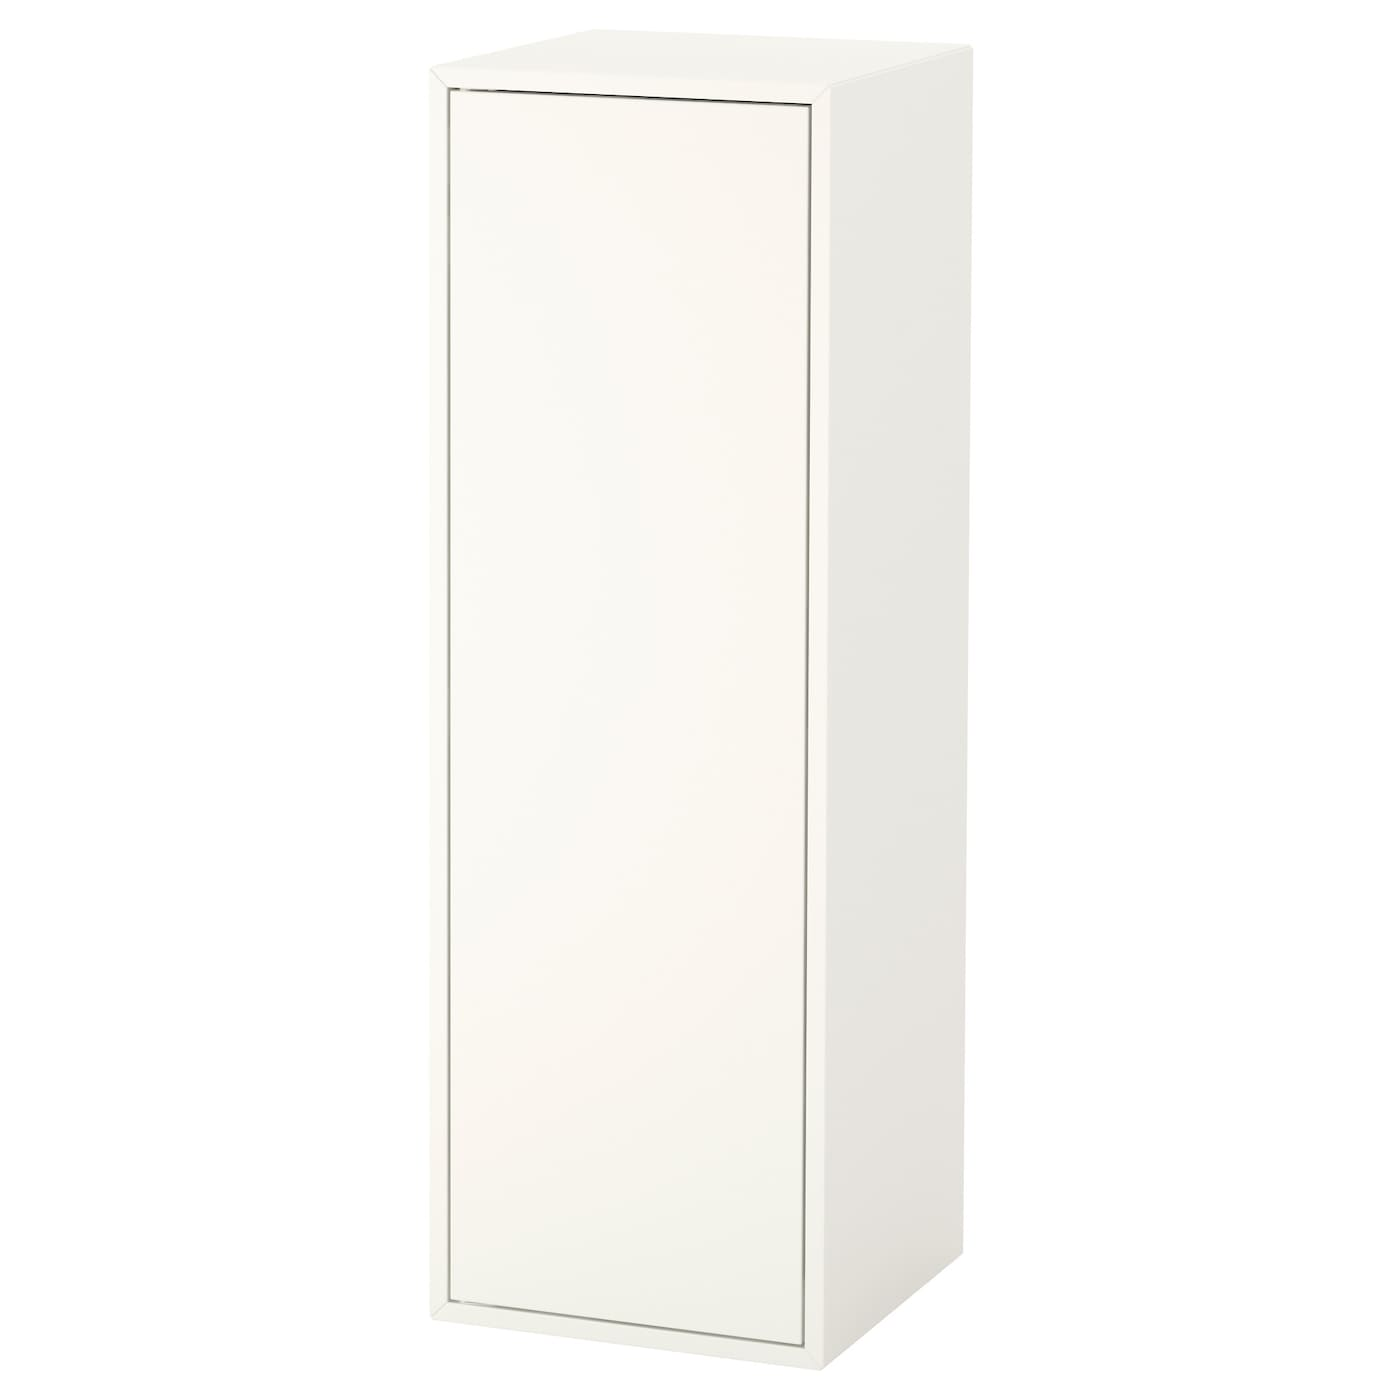 eket cabinet w door and 2 shelves white 35x35x105 cm ikea. Black Bedroom Furniture Sets. Home Design Ideas